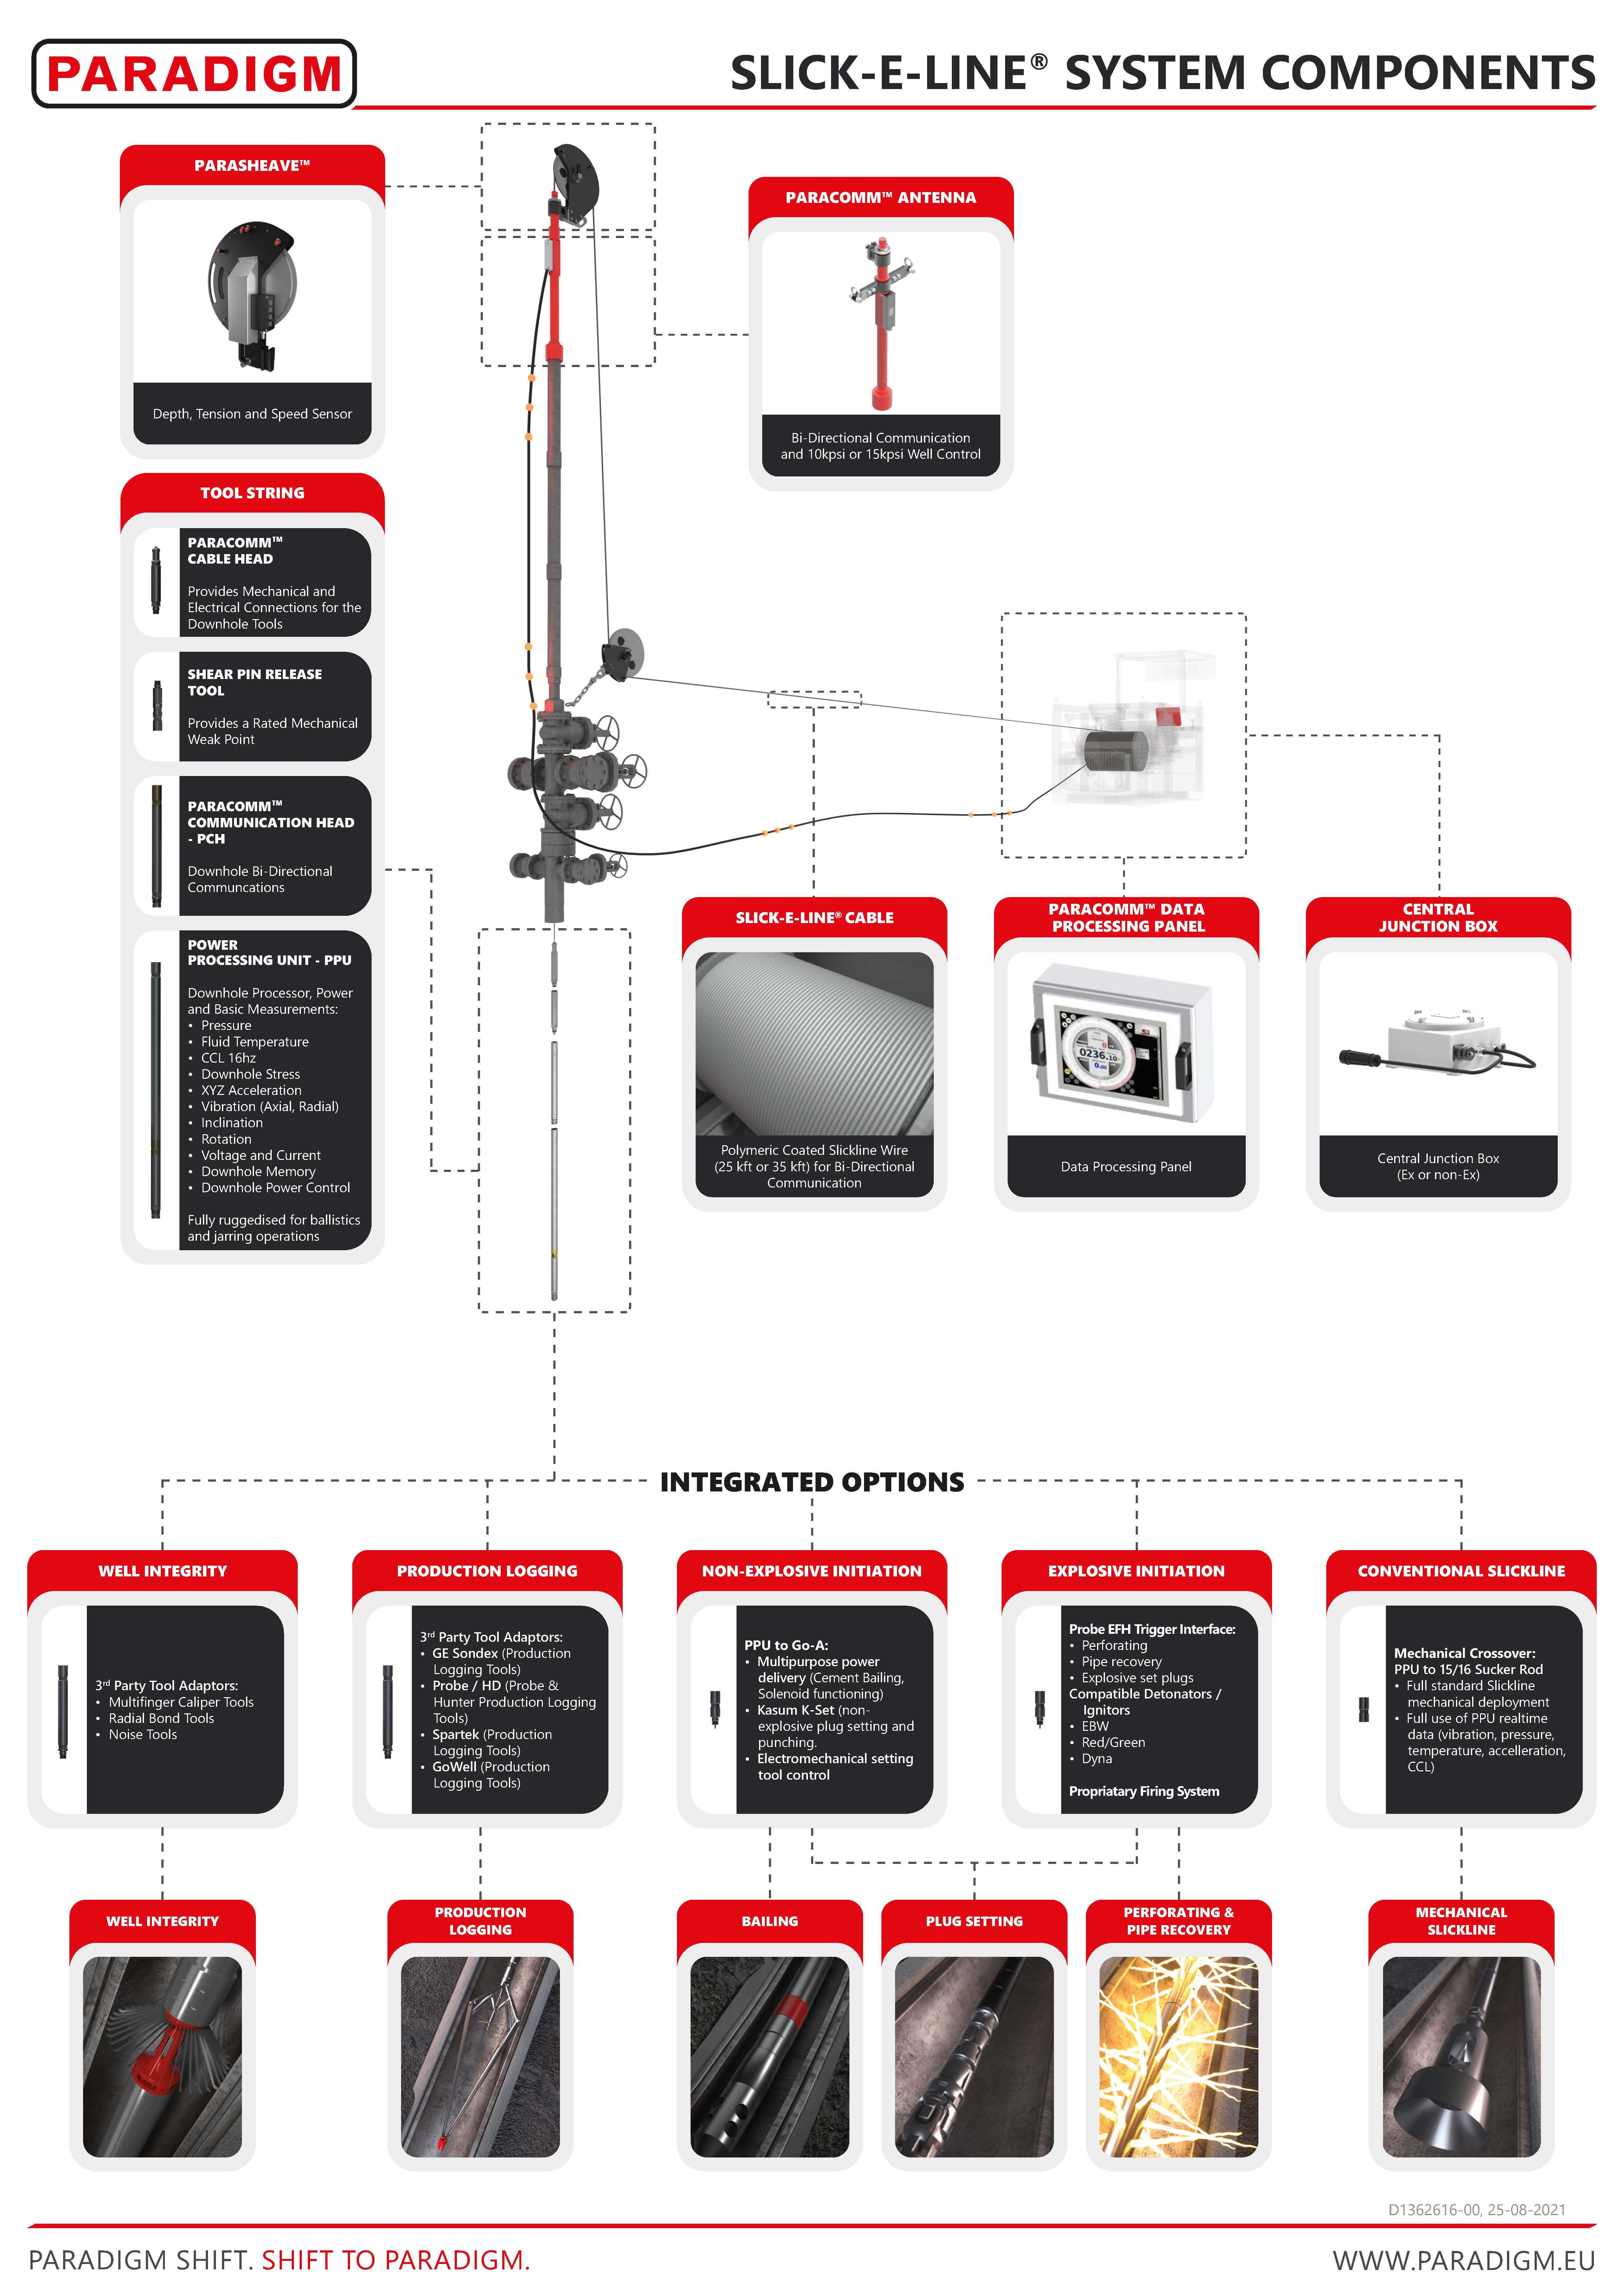 Interactive Slick-E-Line® System Components Overview